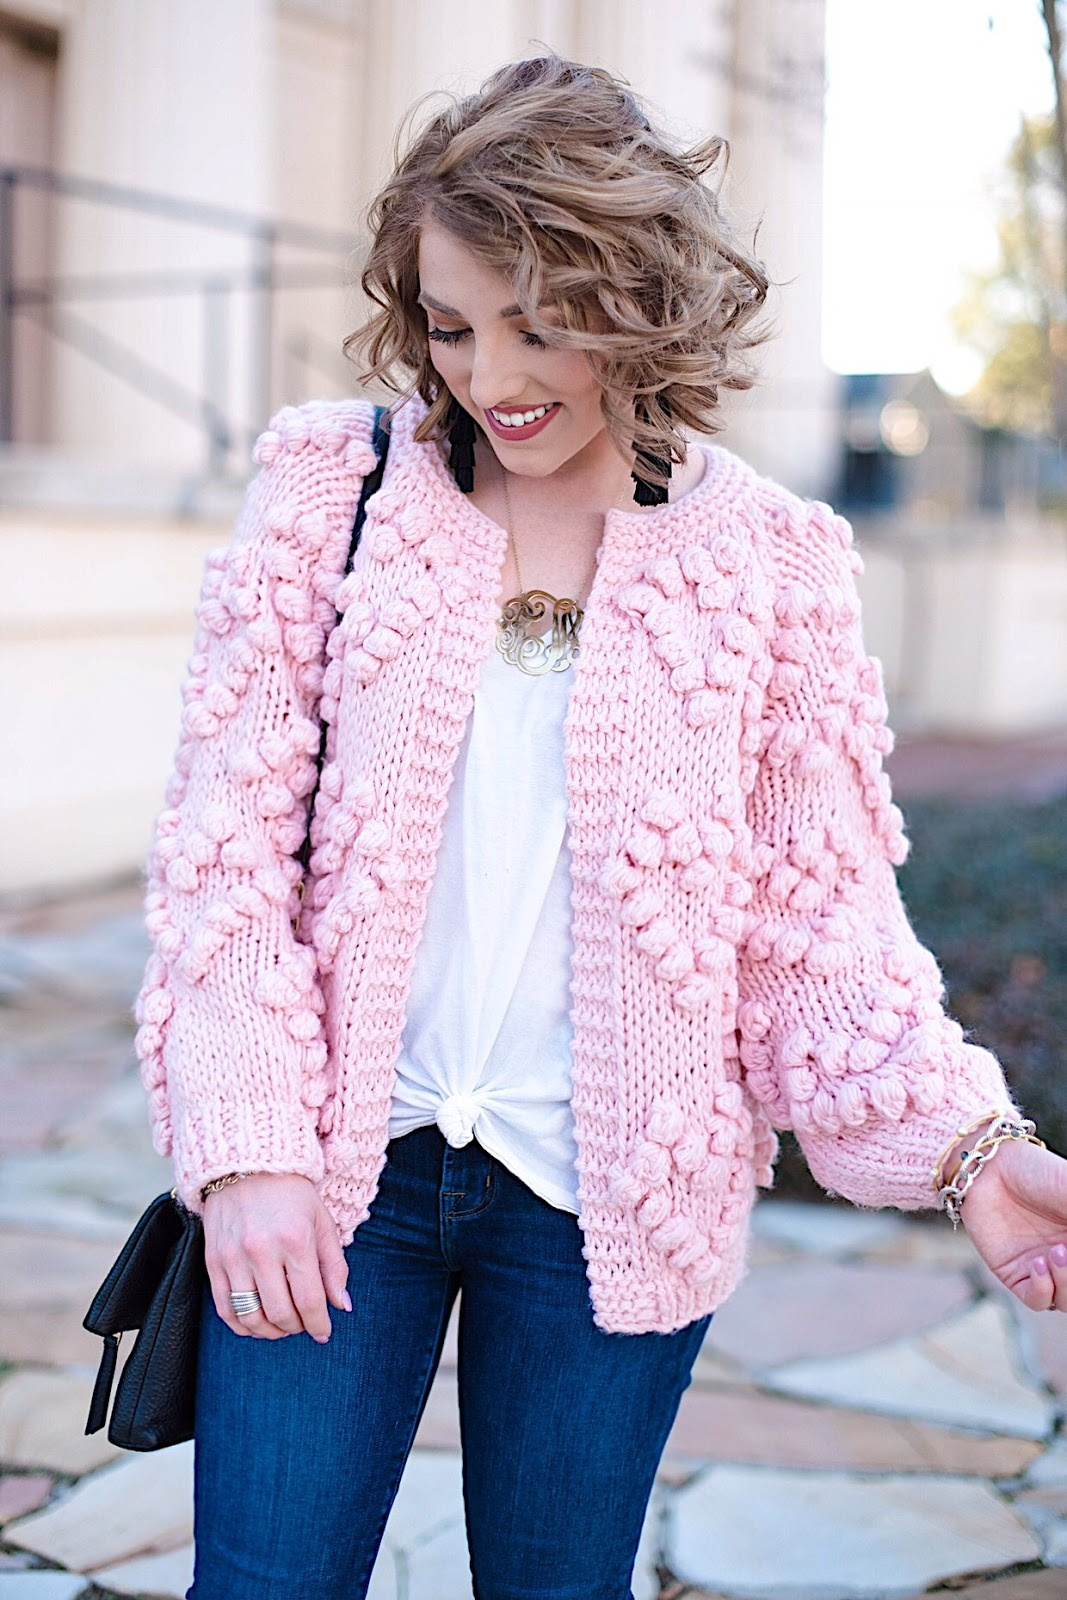 Heart Cardigan - All details can be found on Something Delightful Blog